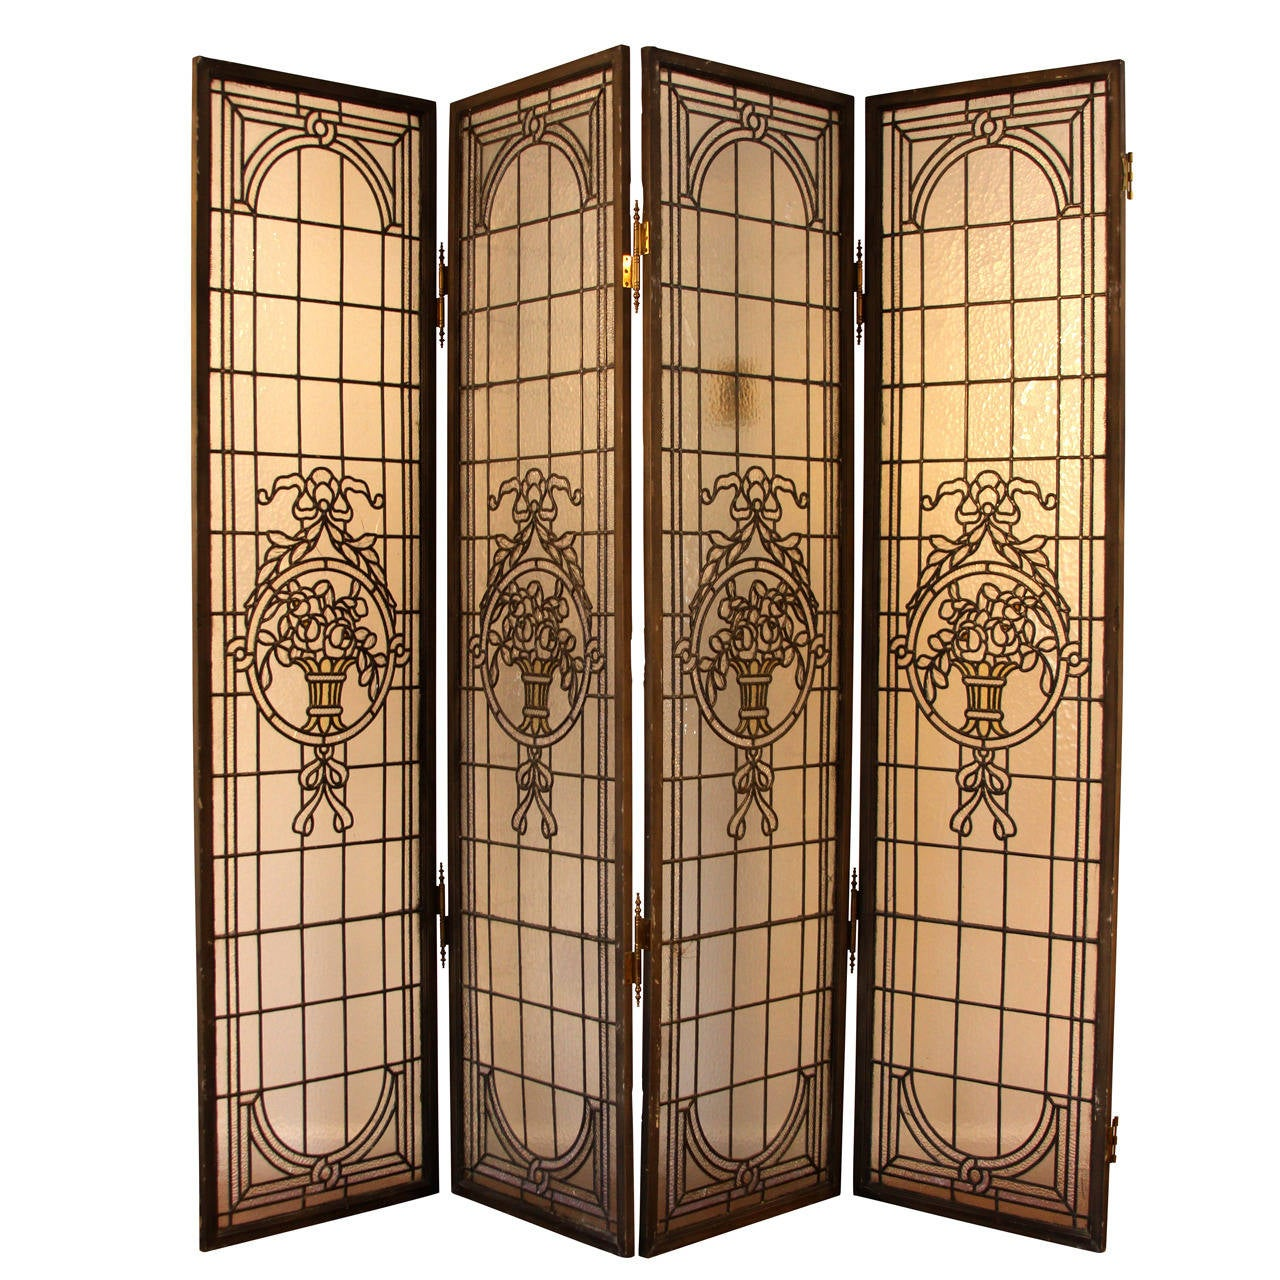 Free standing stained glass window screen at 1stdibs for Window screens for sale